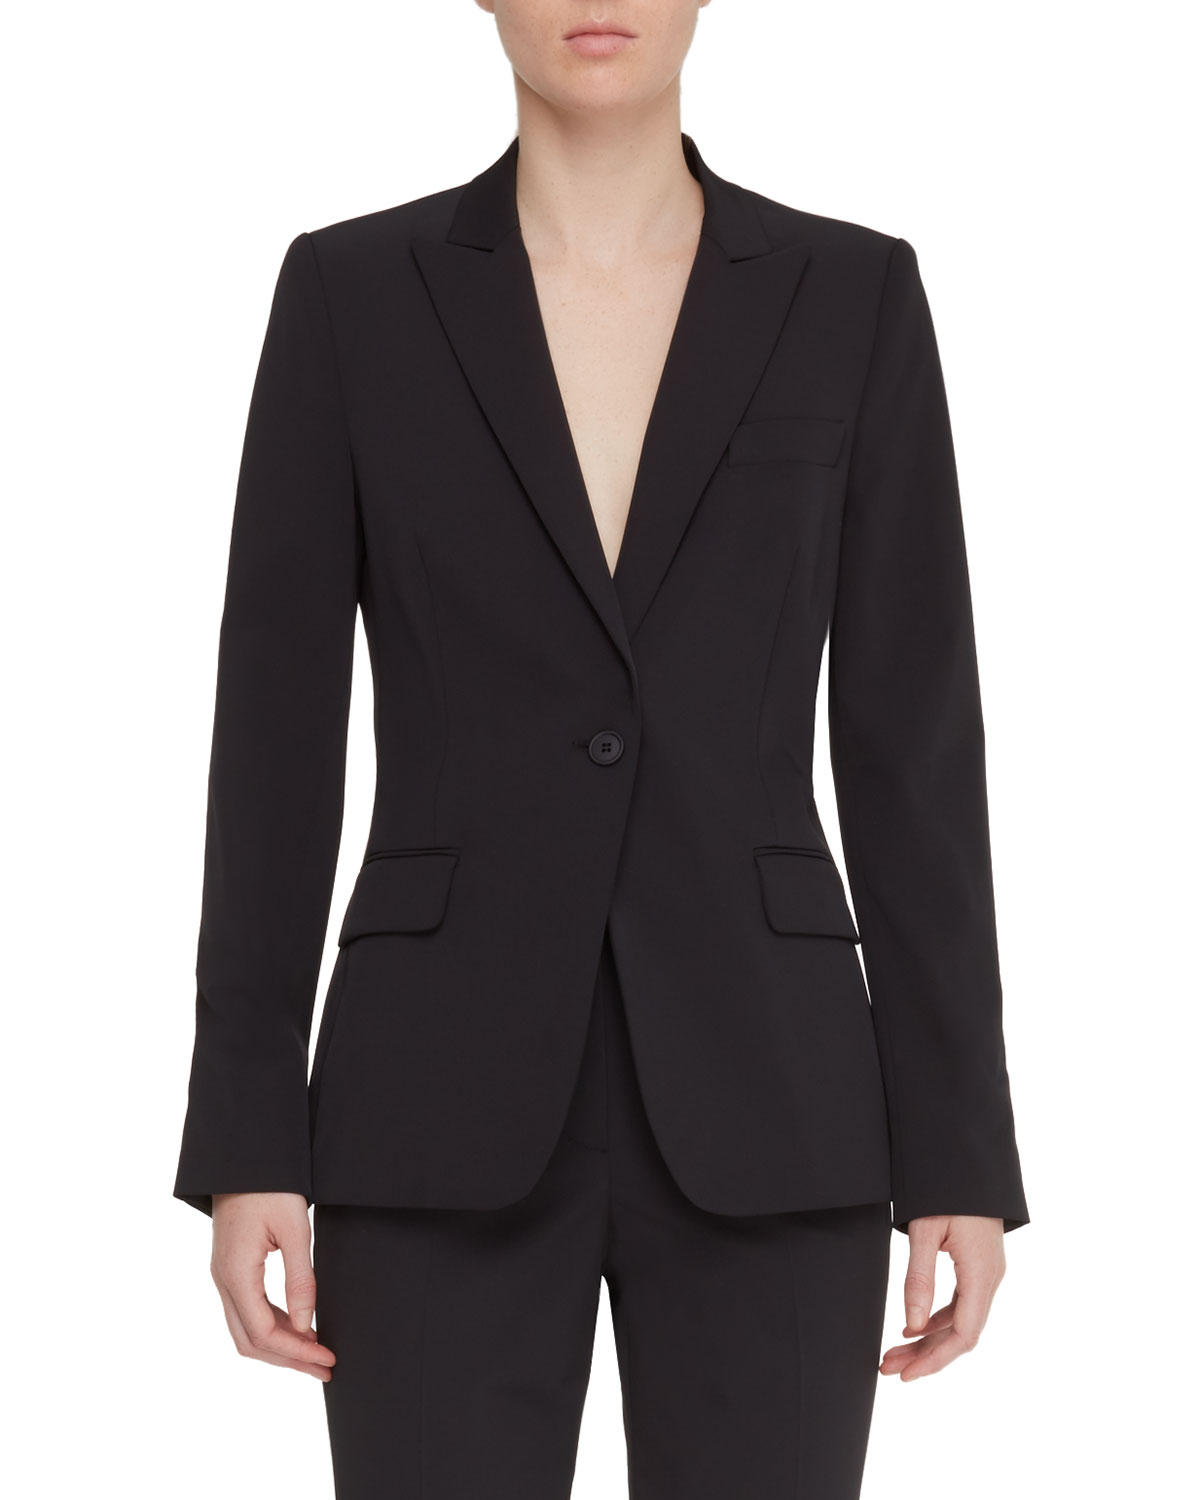 Expressionist One-Button Easy Care Jacket